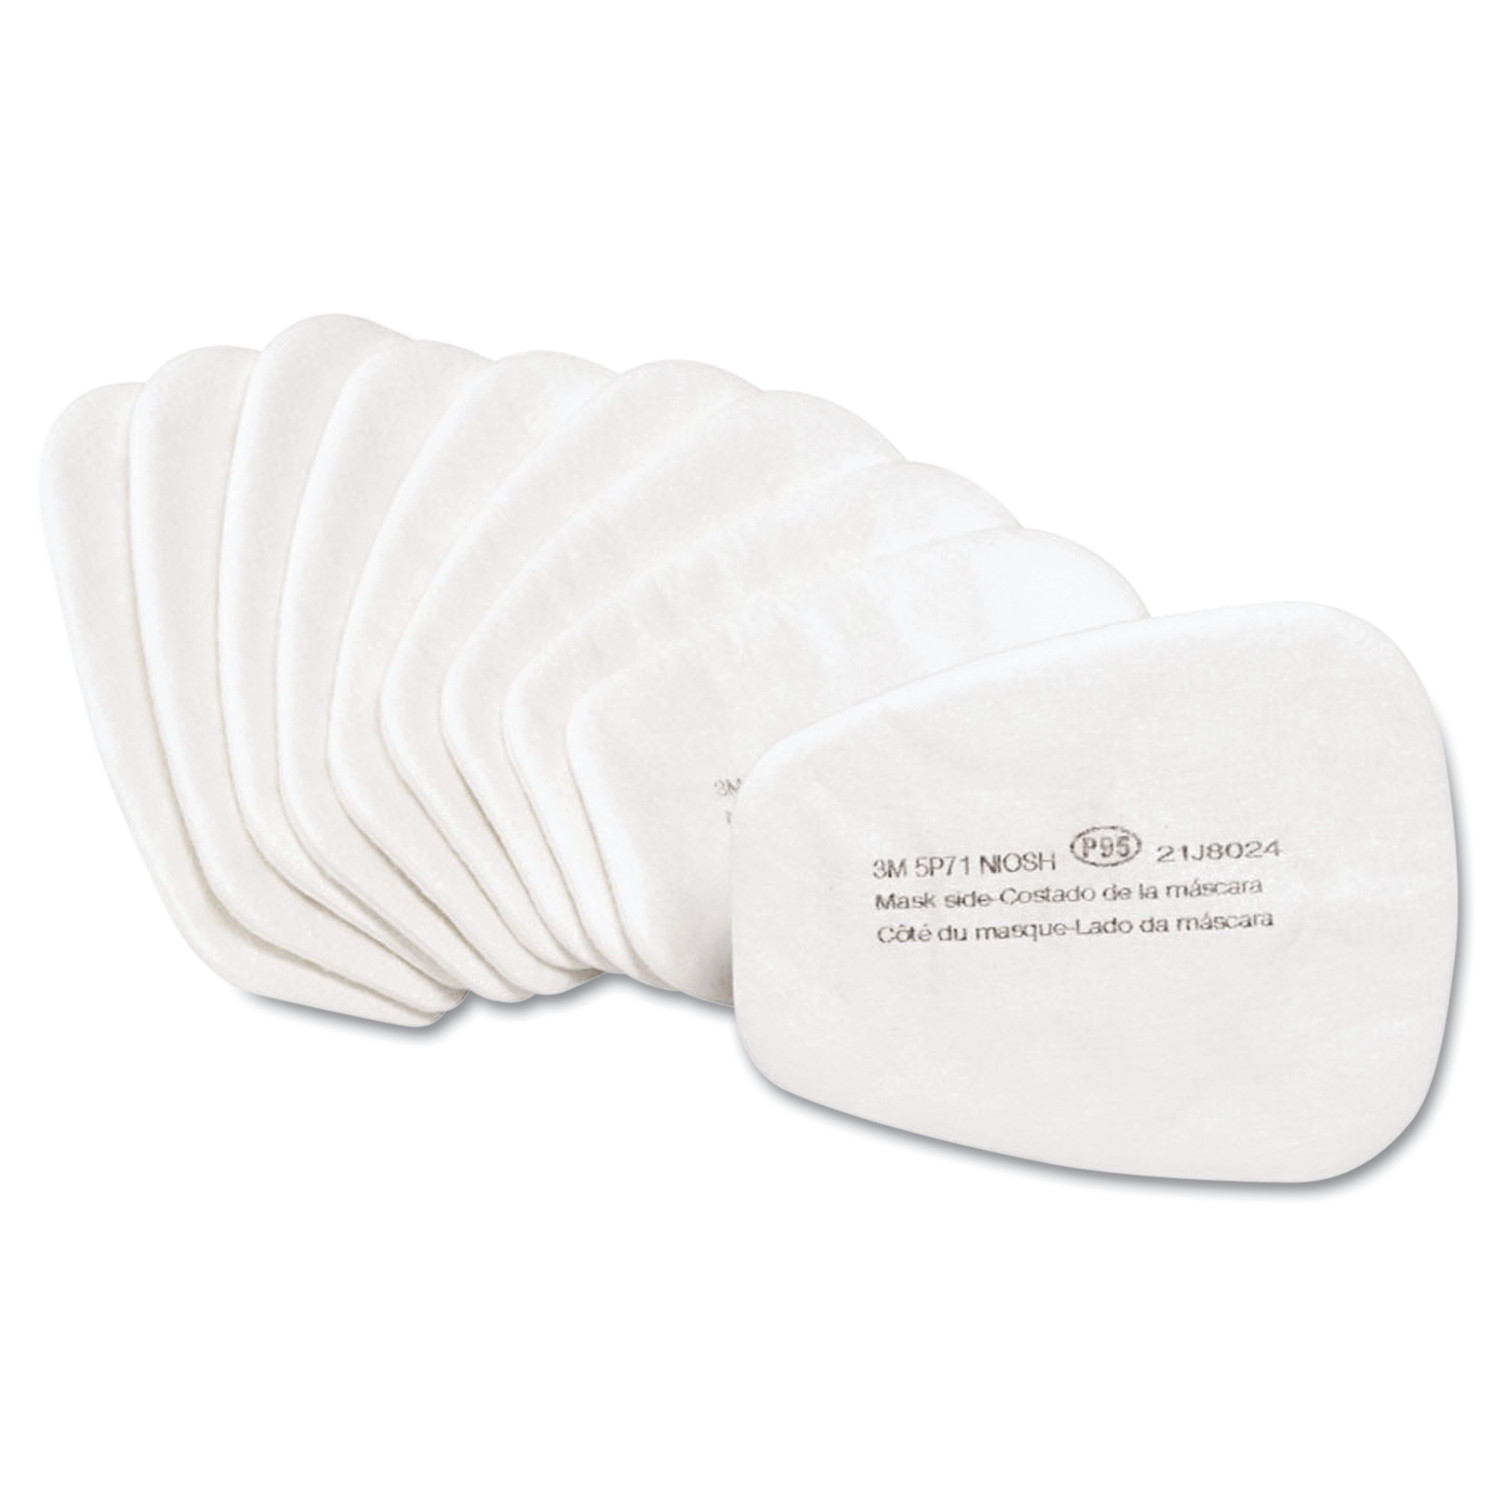 3M 07194 Particulate Respirator Filter 5P71, P95, 10 Filters by 3M/COMMERCIAL TAPE DIV.